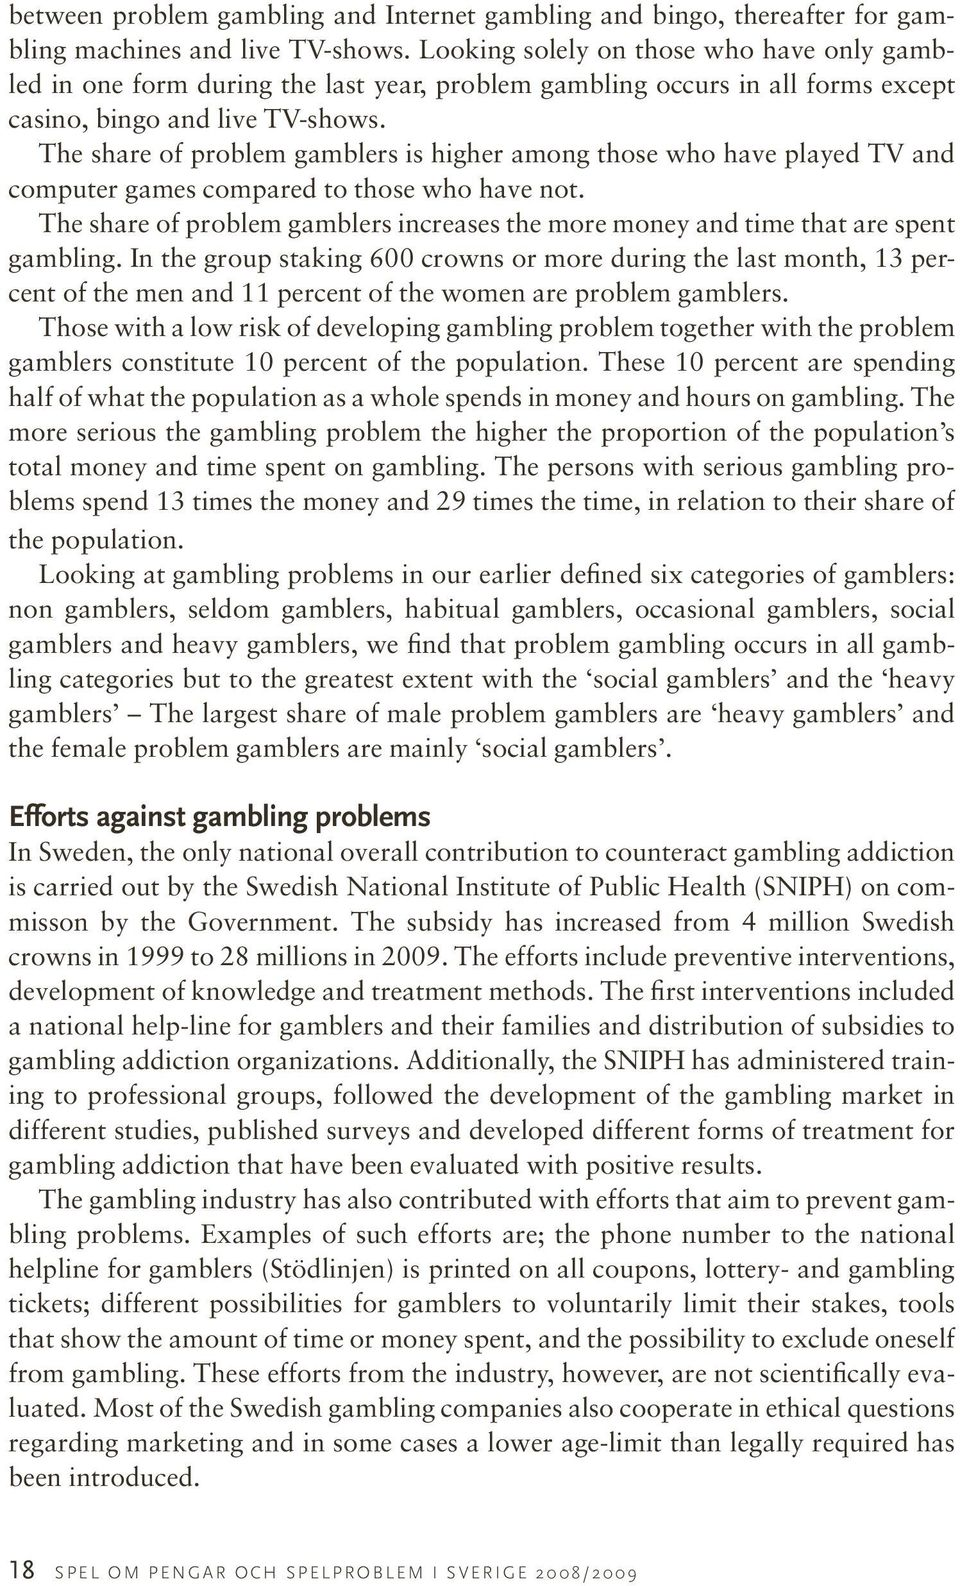 The share of problem gamblers is higher among those who have played TV and computer games compared to those who have not.